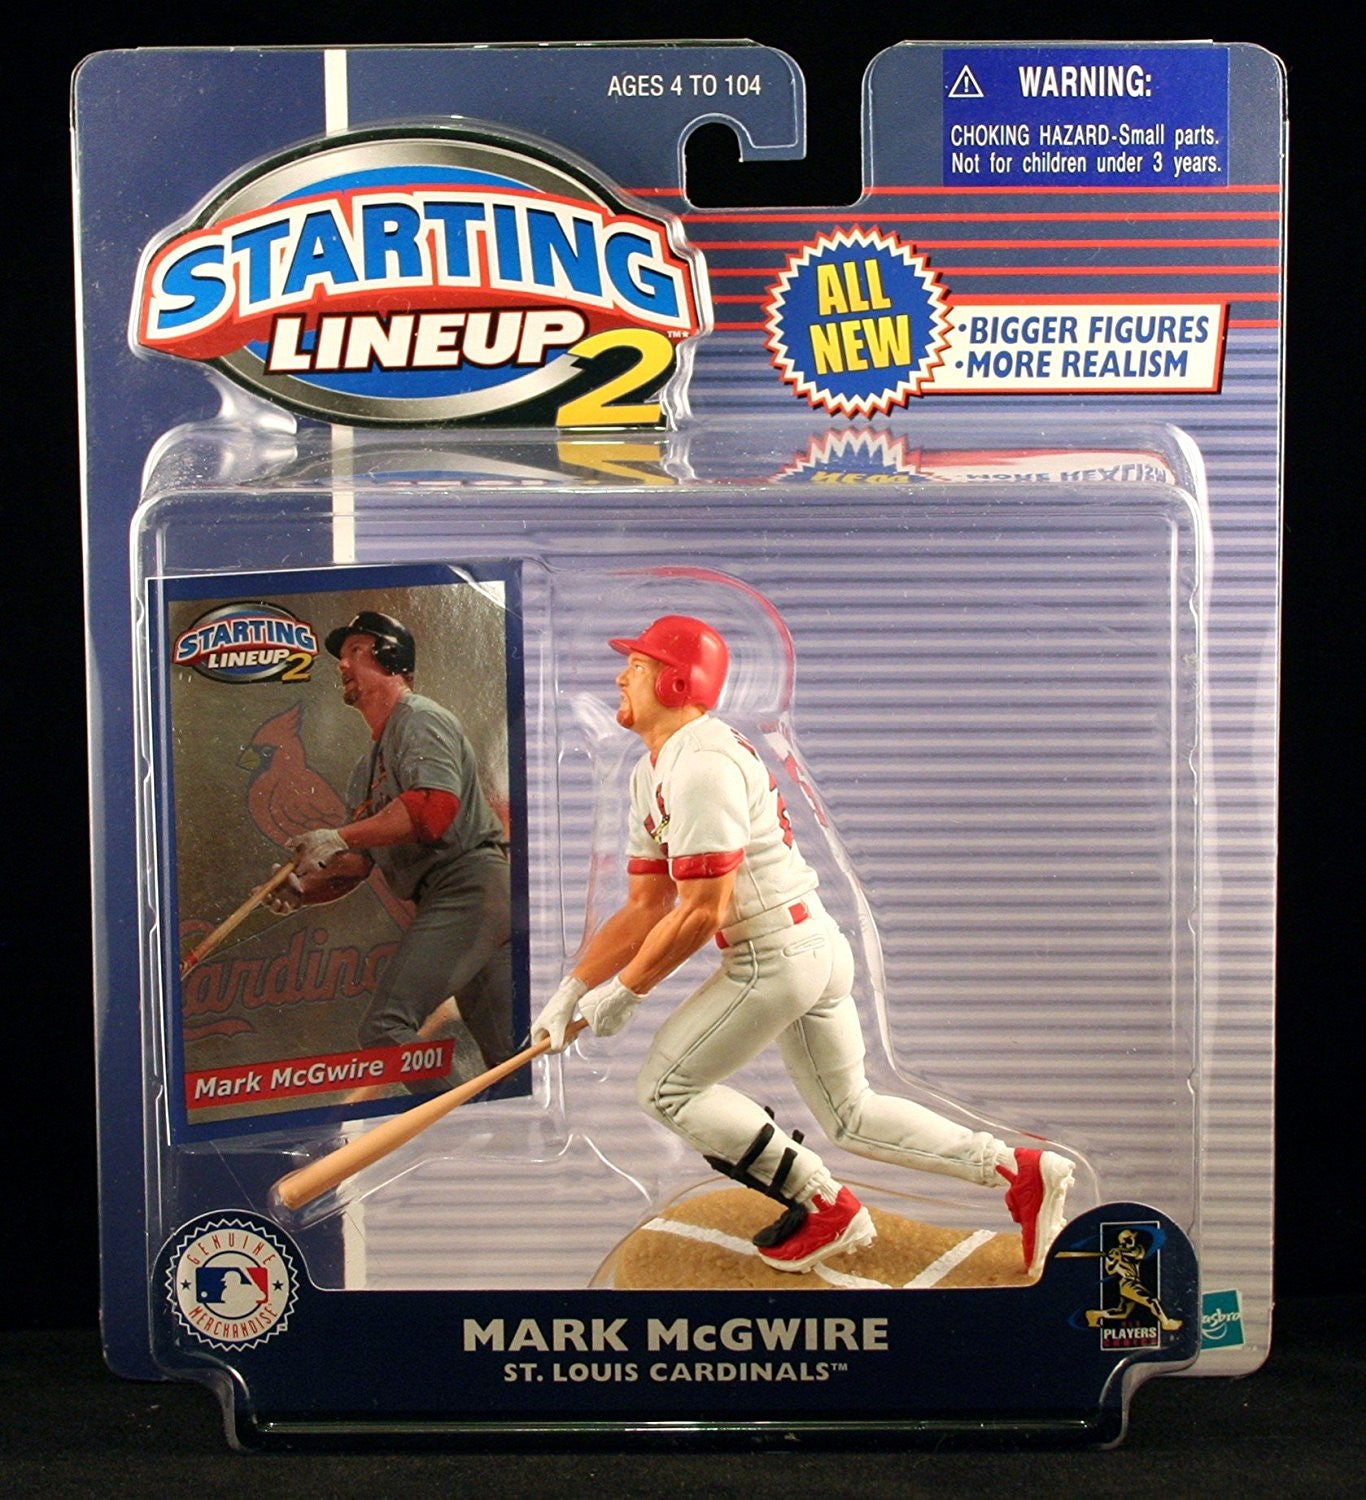 MARK MCGWIRE / ST. LOUIS CARDINALS 2001 MLB Starting Lineup 2 Action Figure & Exclusive Trading Card